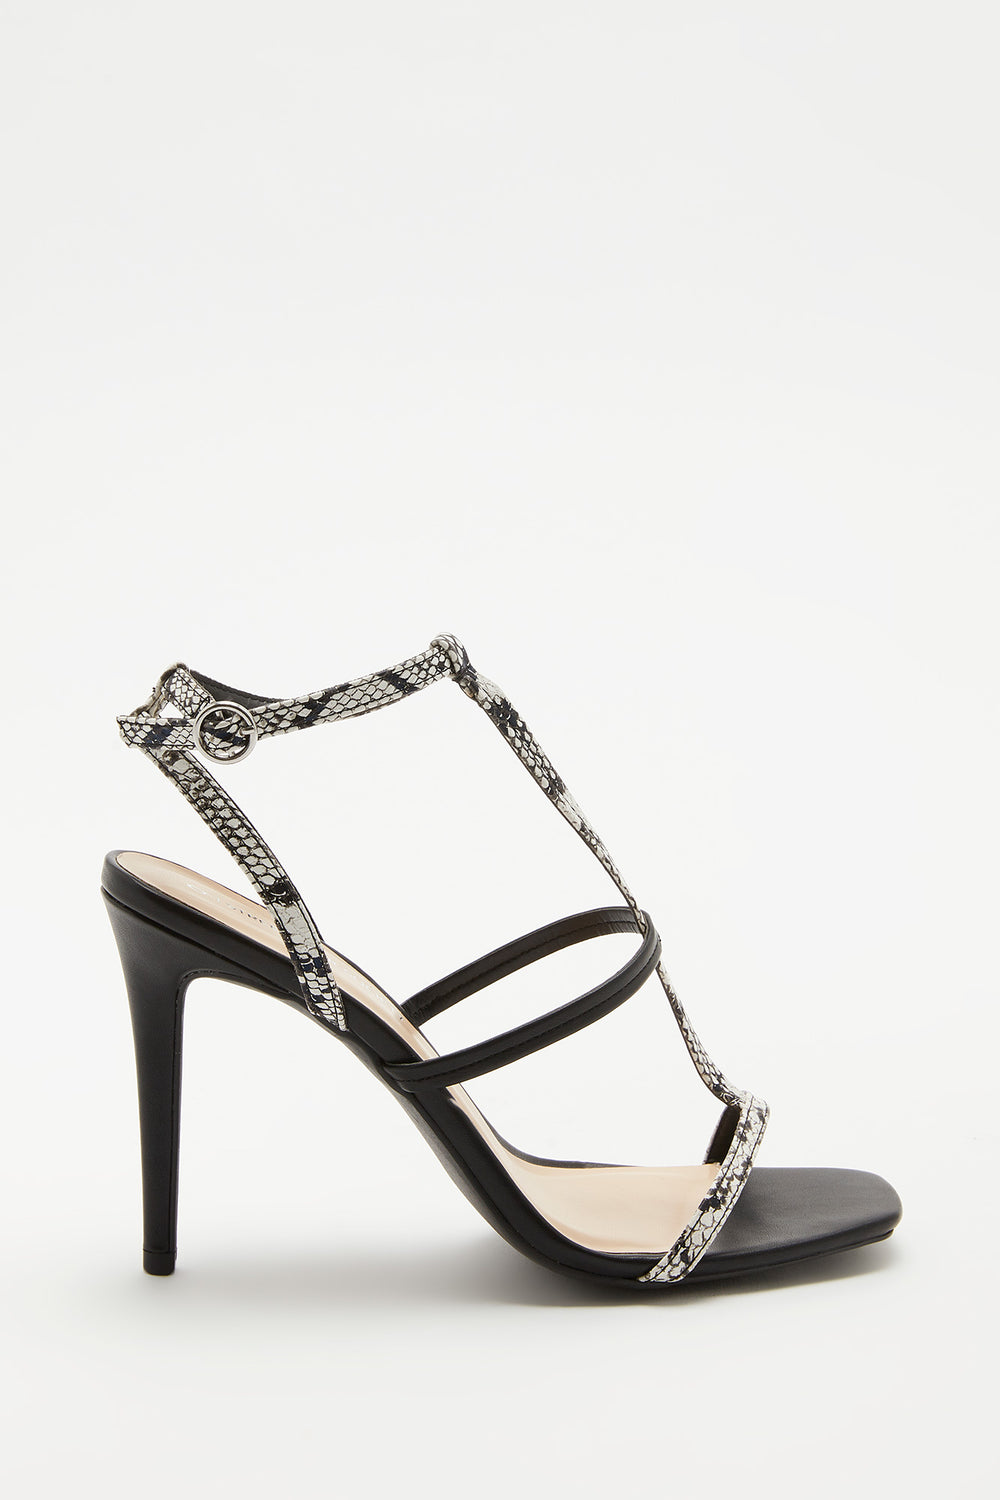 Strappy Python Stiletto Sandal Black with White